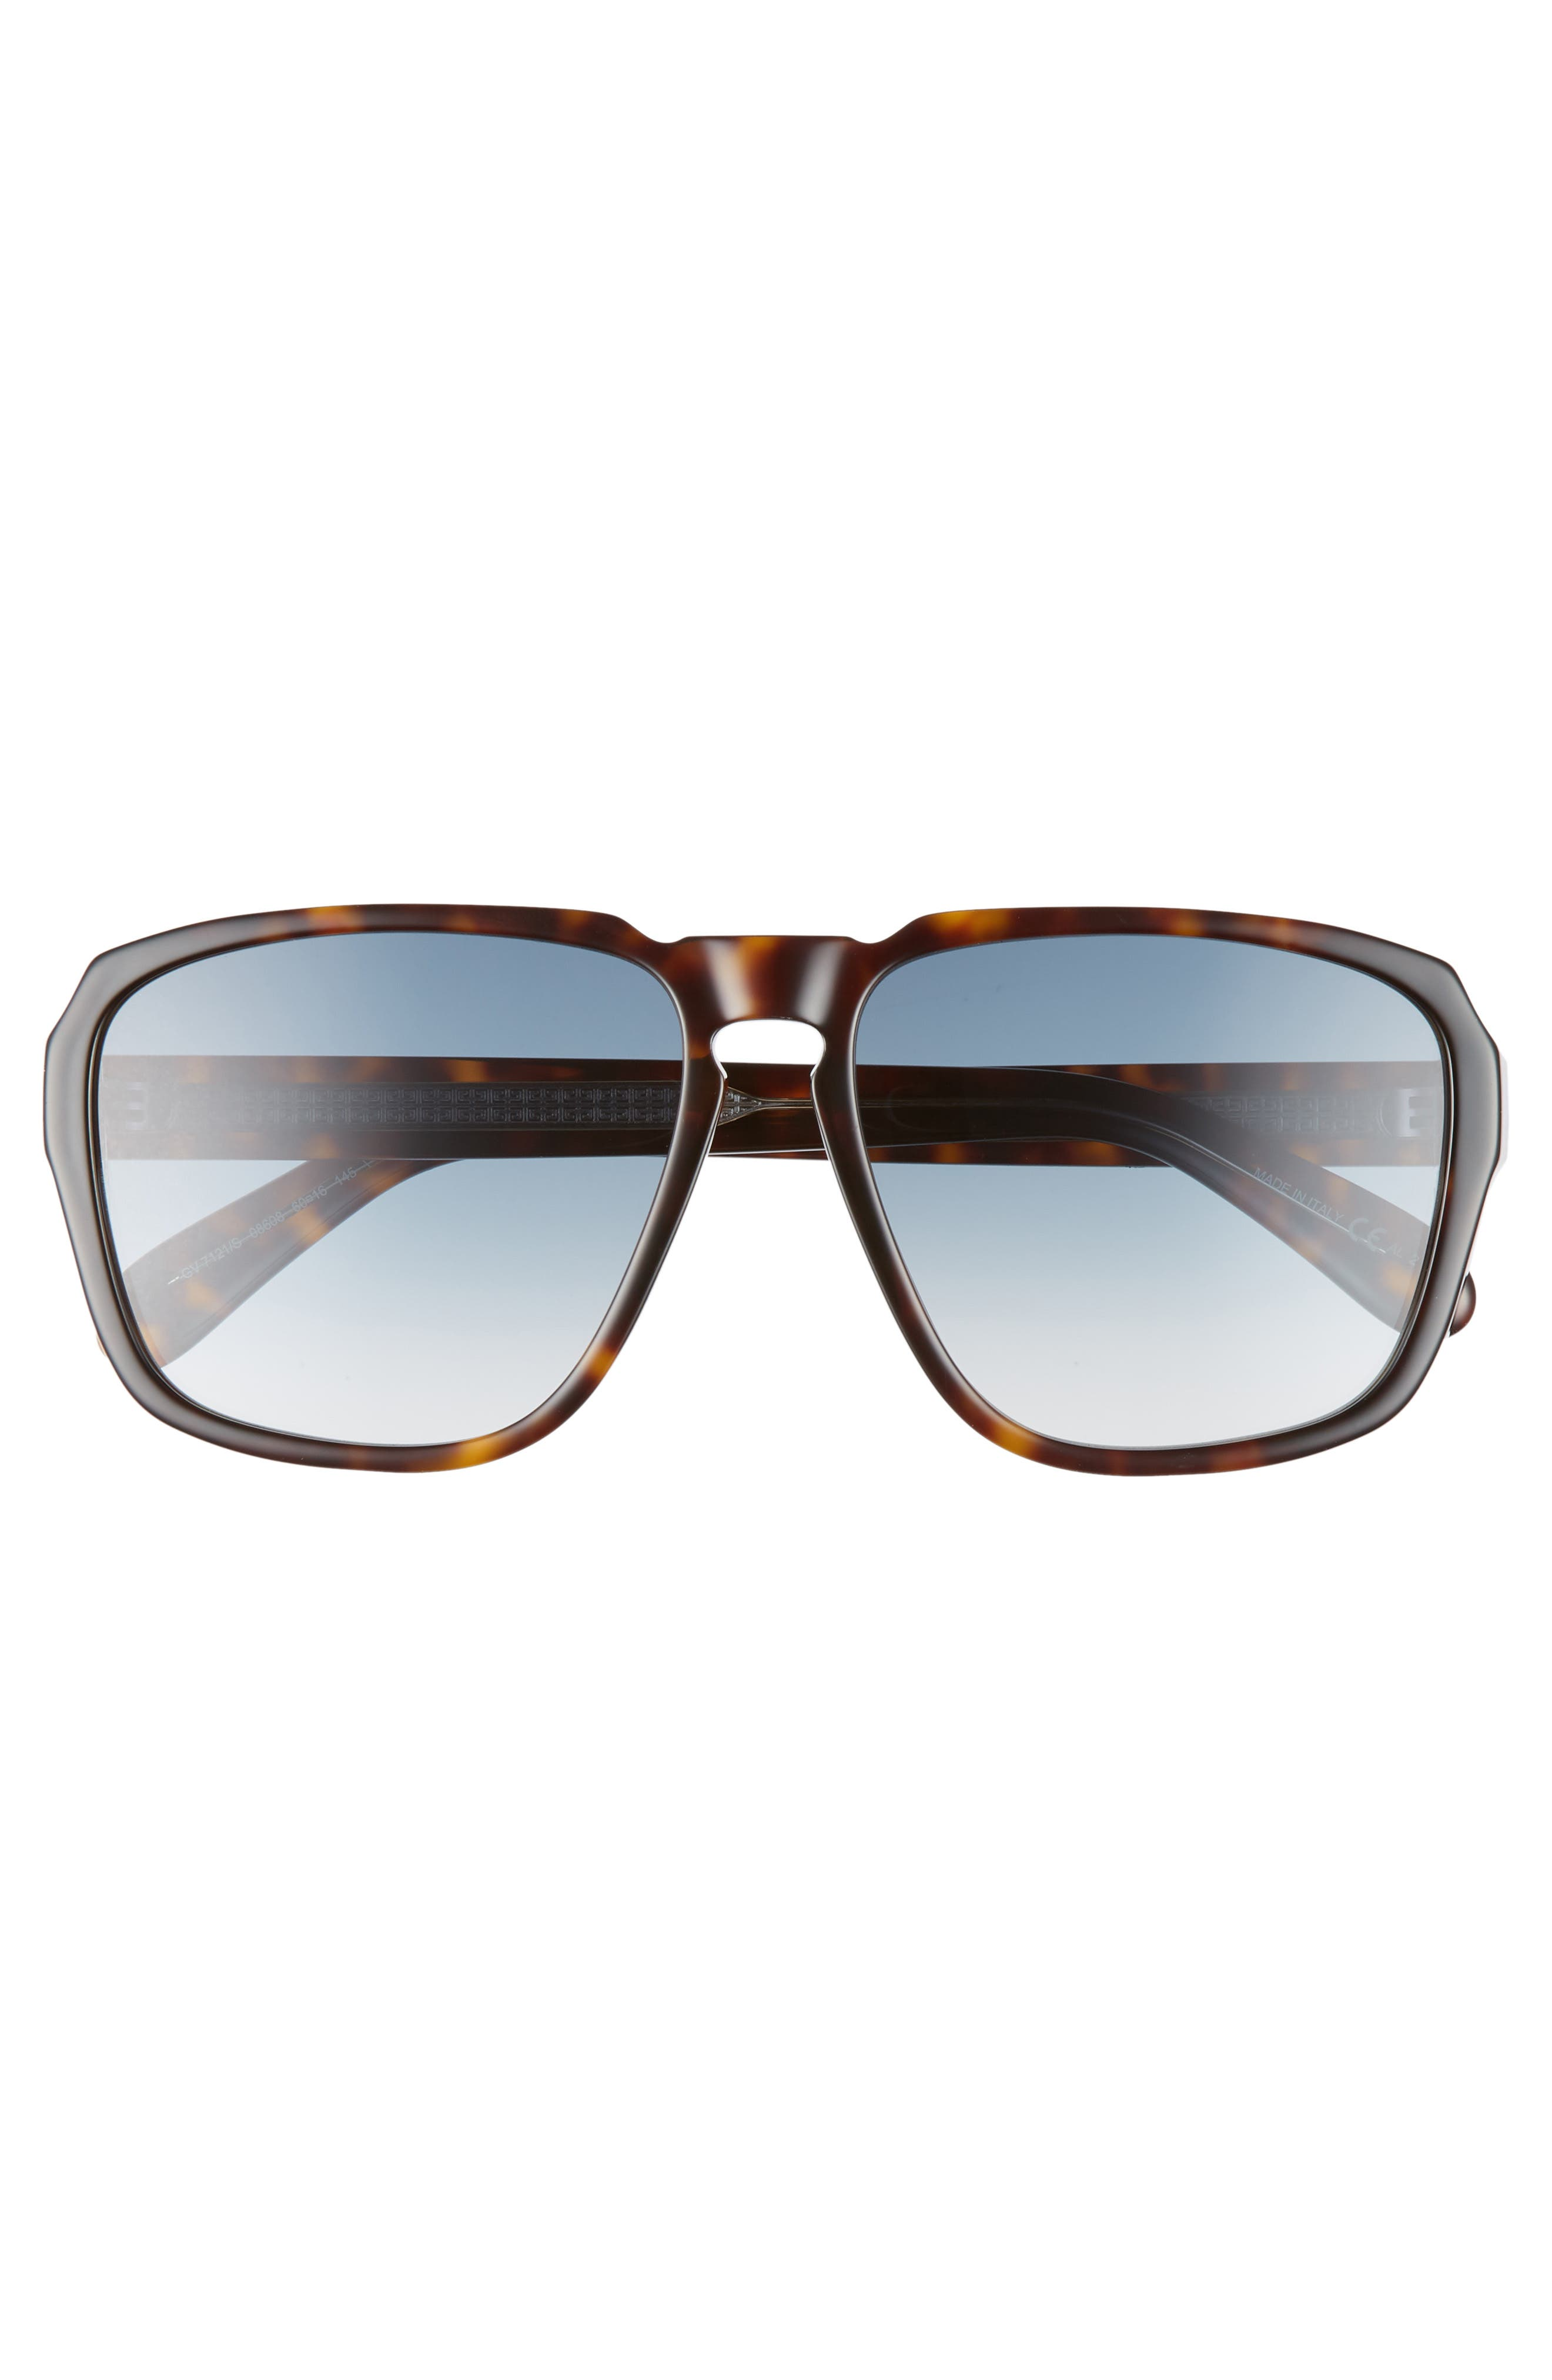 60mm Flat Top Sunglasses,                             Alternate thumbnail 3, color,                             DARK HAVANA